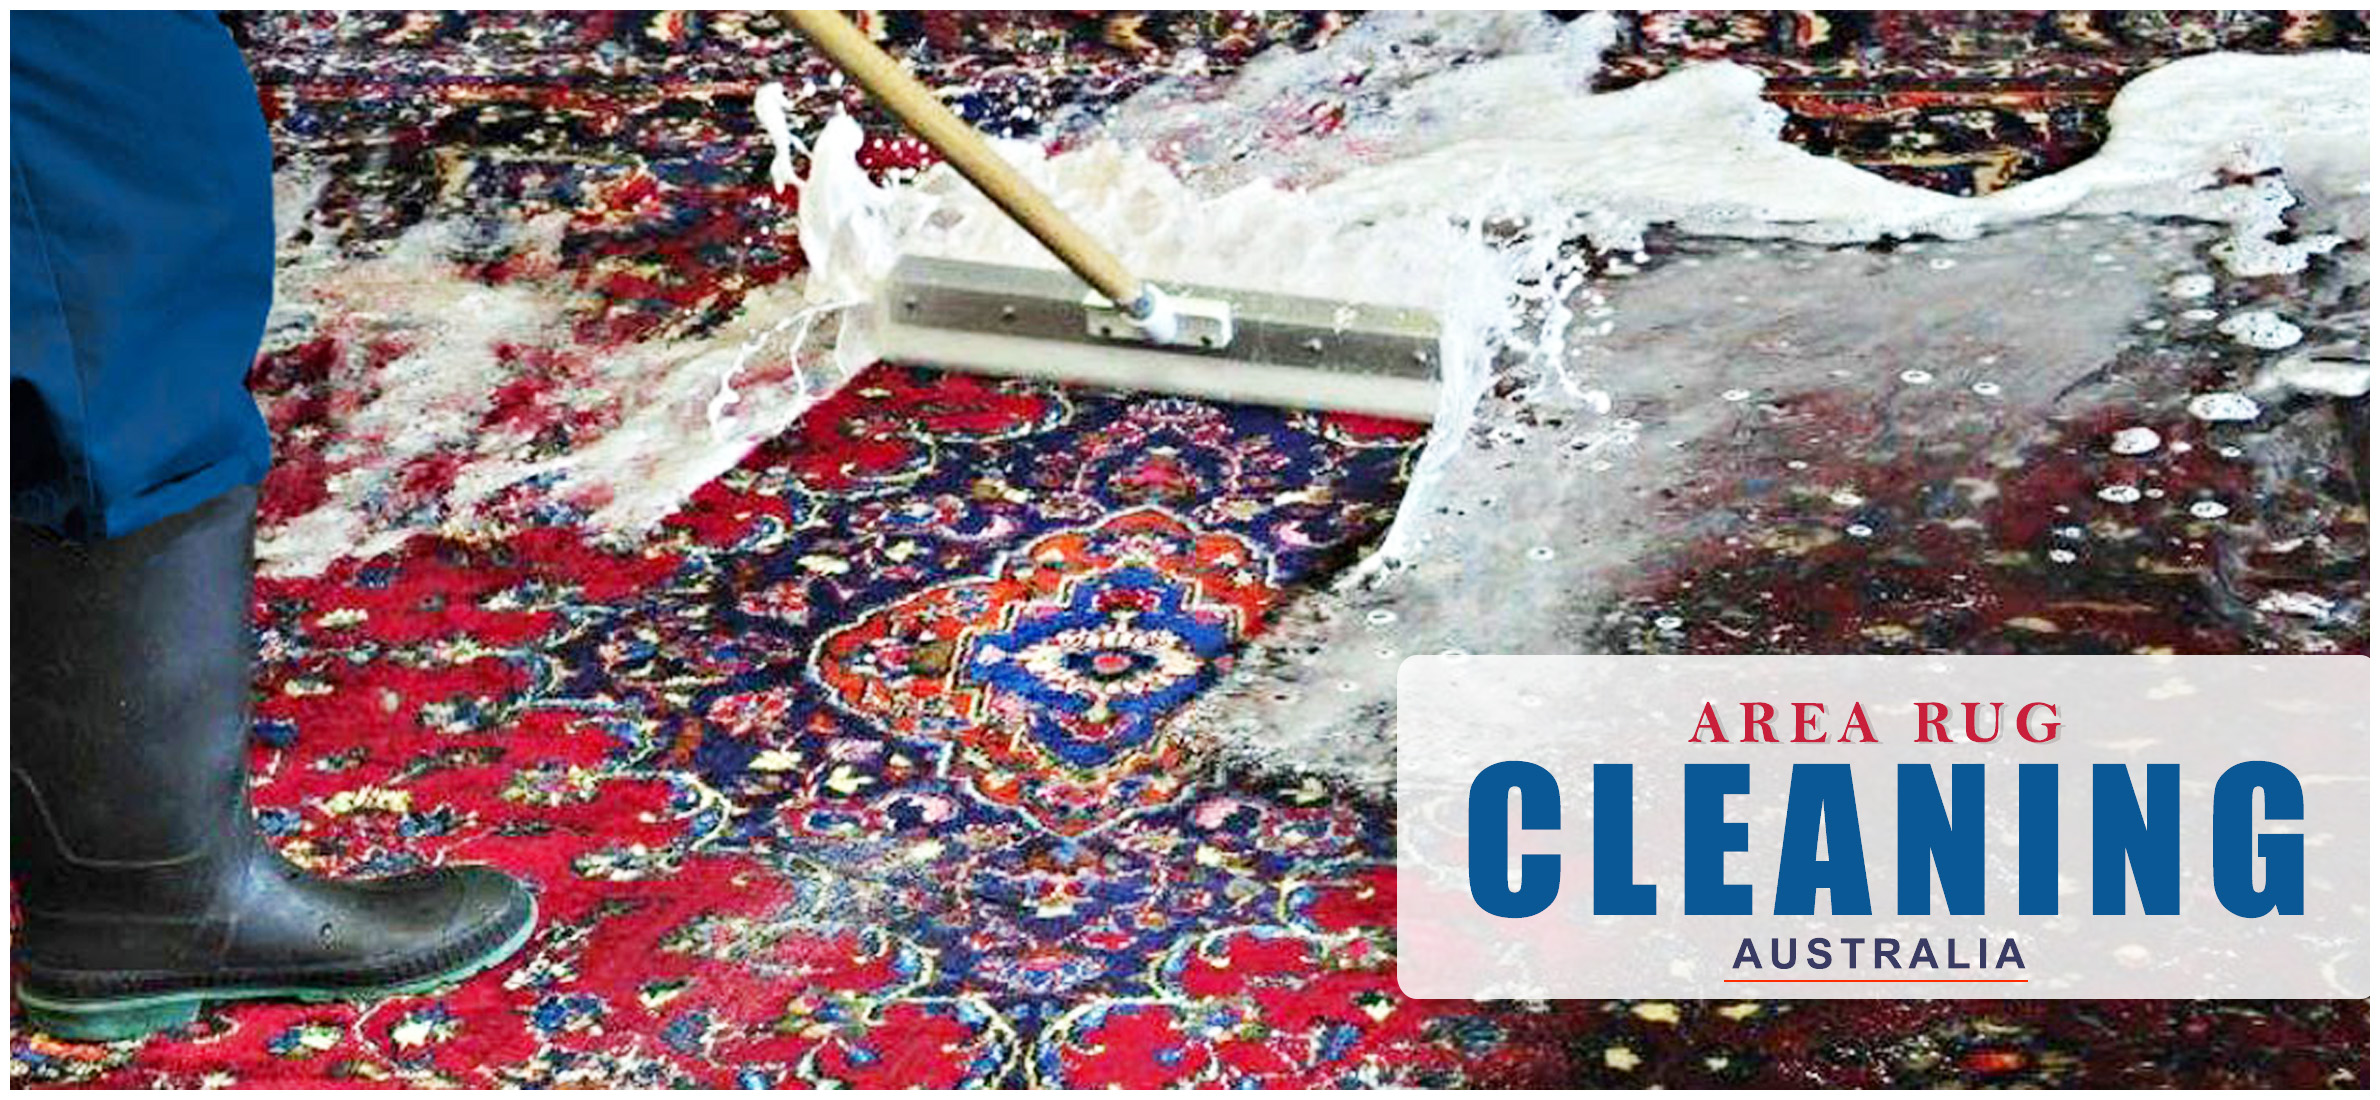 rug-cleaning-melbourne